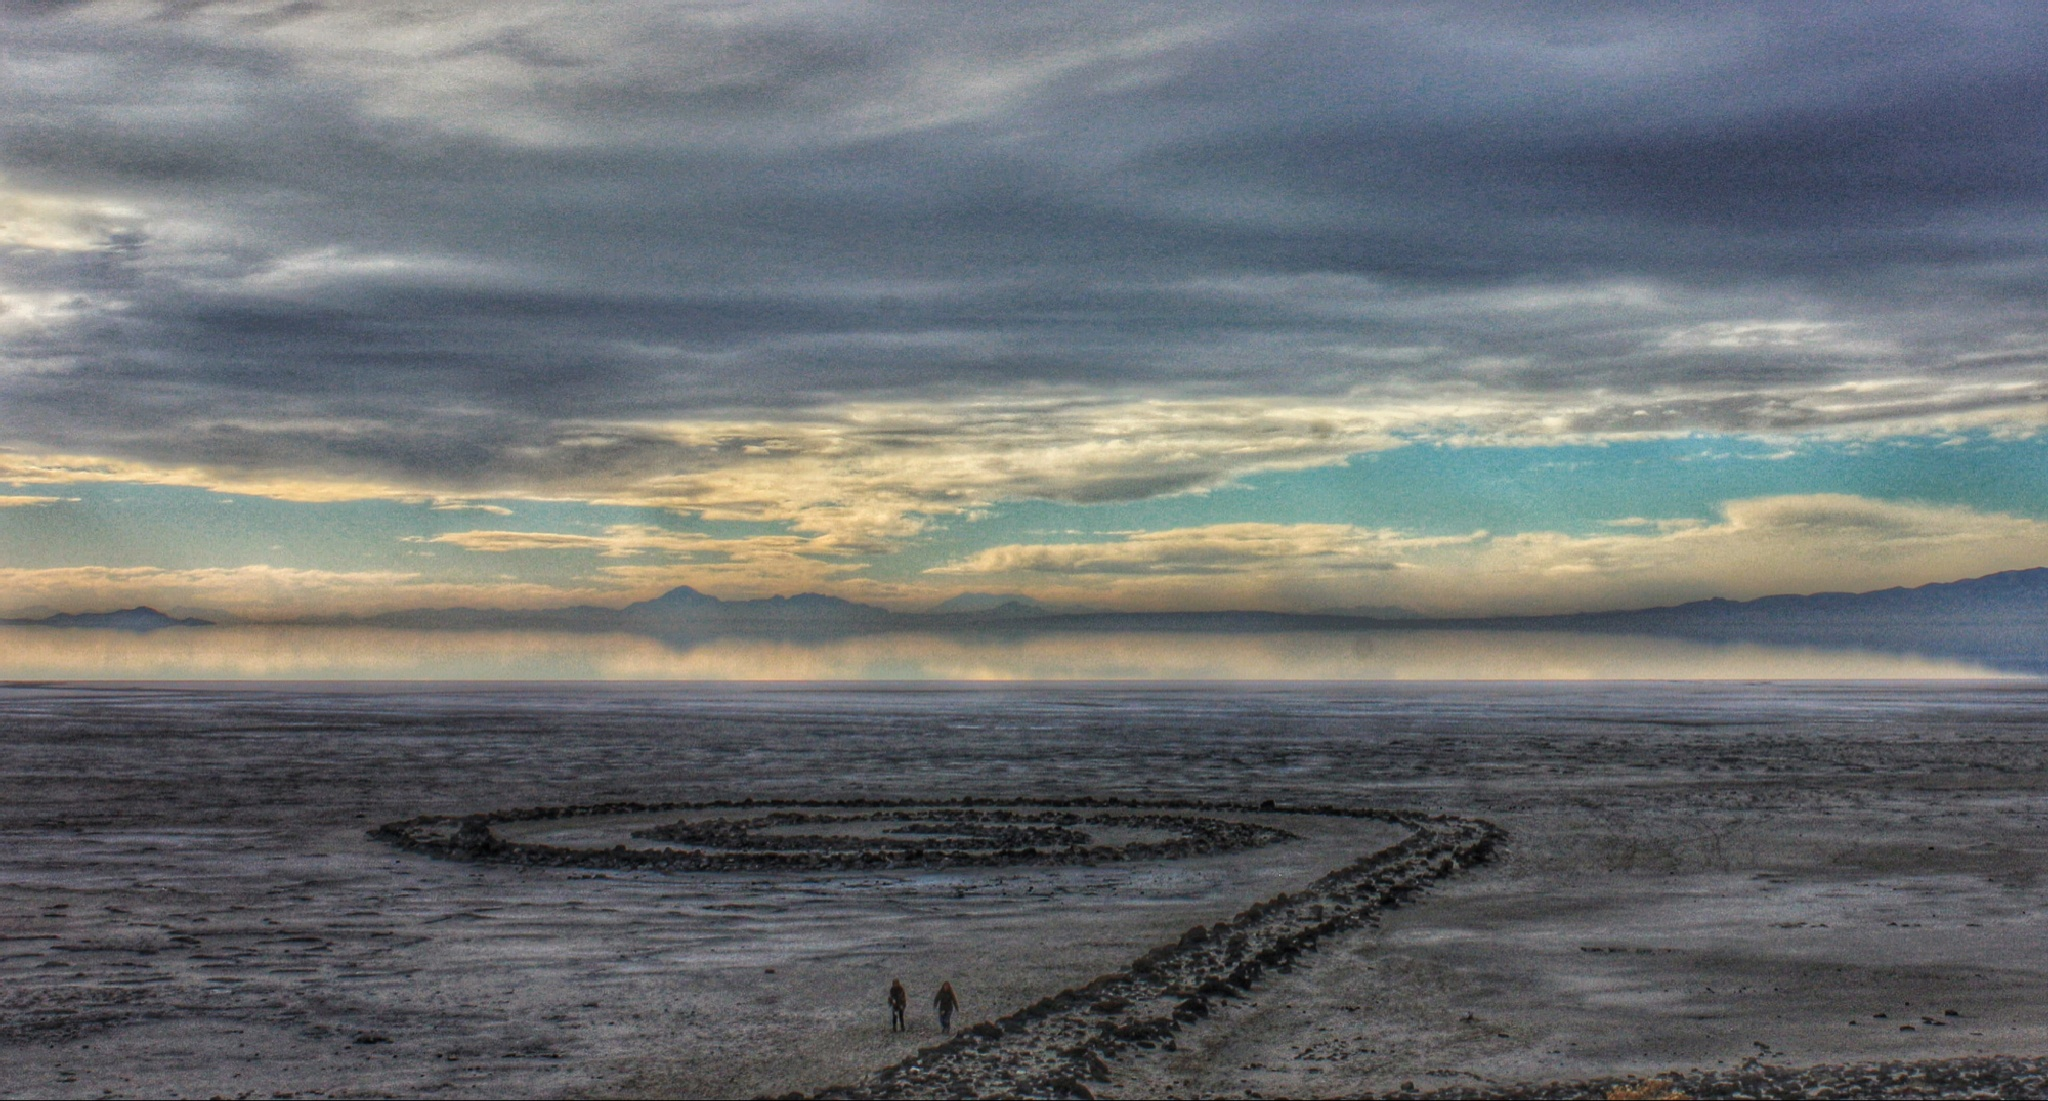 Visitors to the Spiral Jetty by shaunarwhitaker